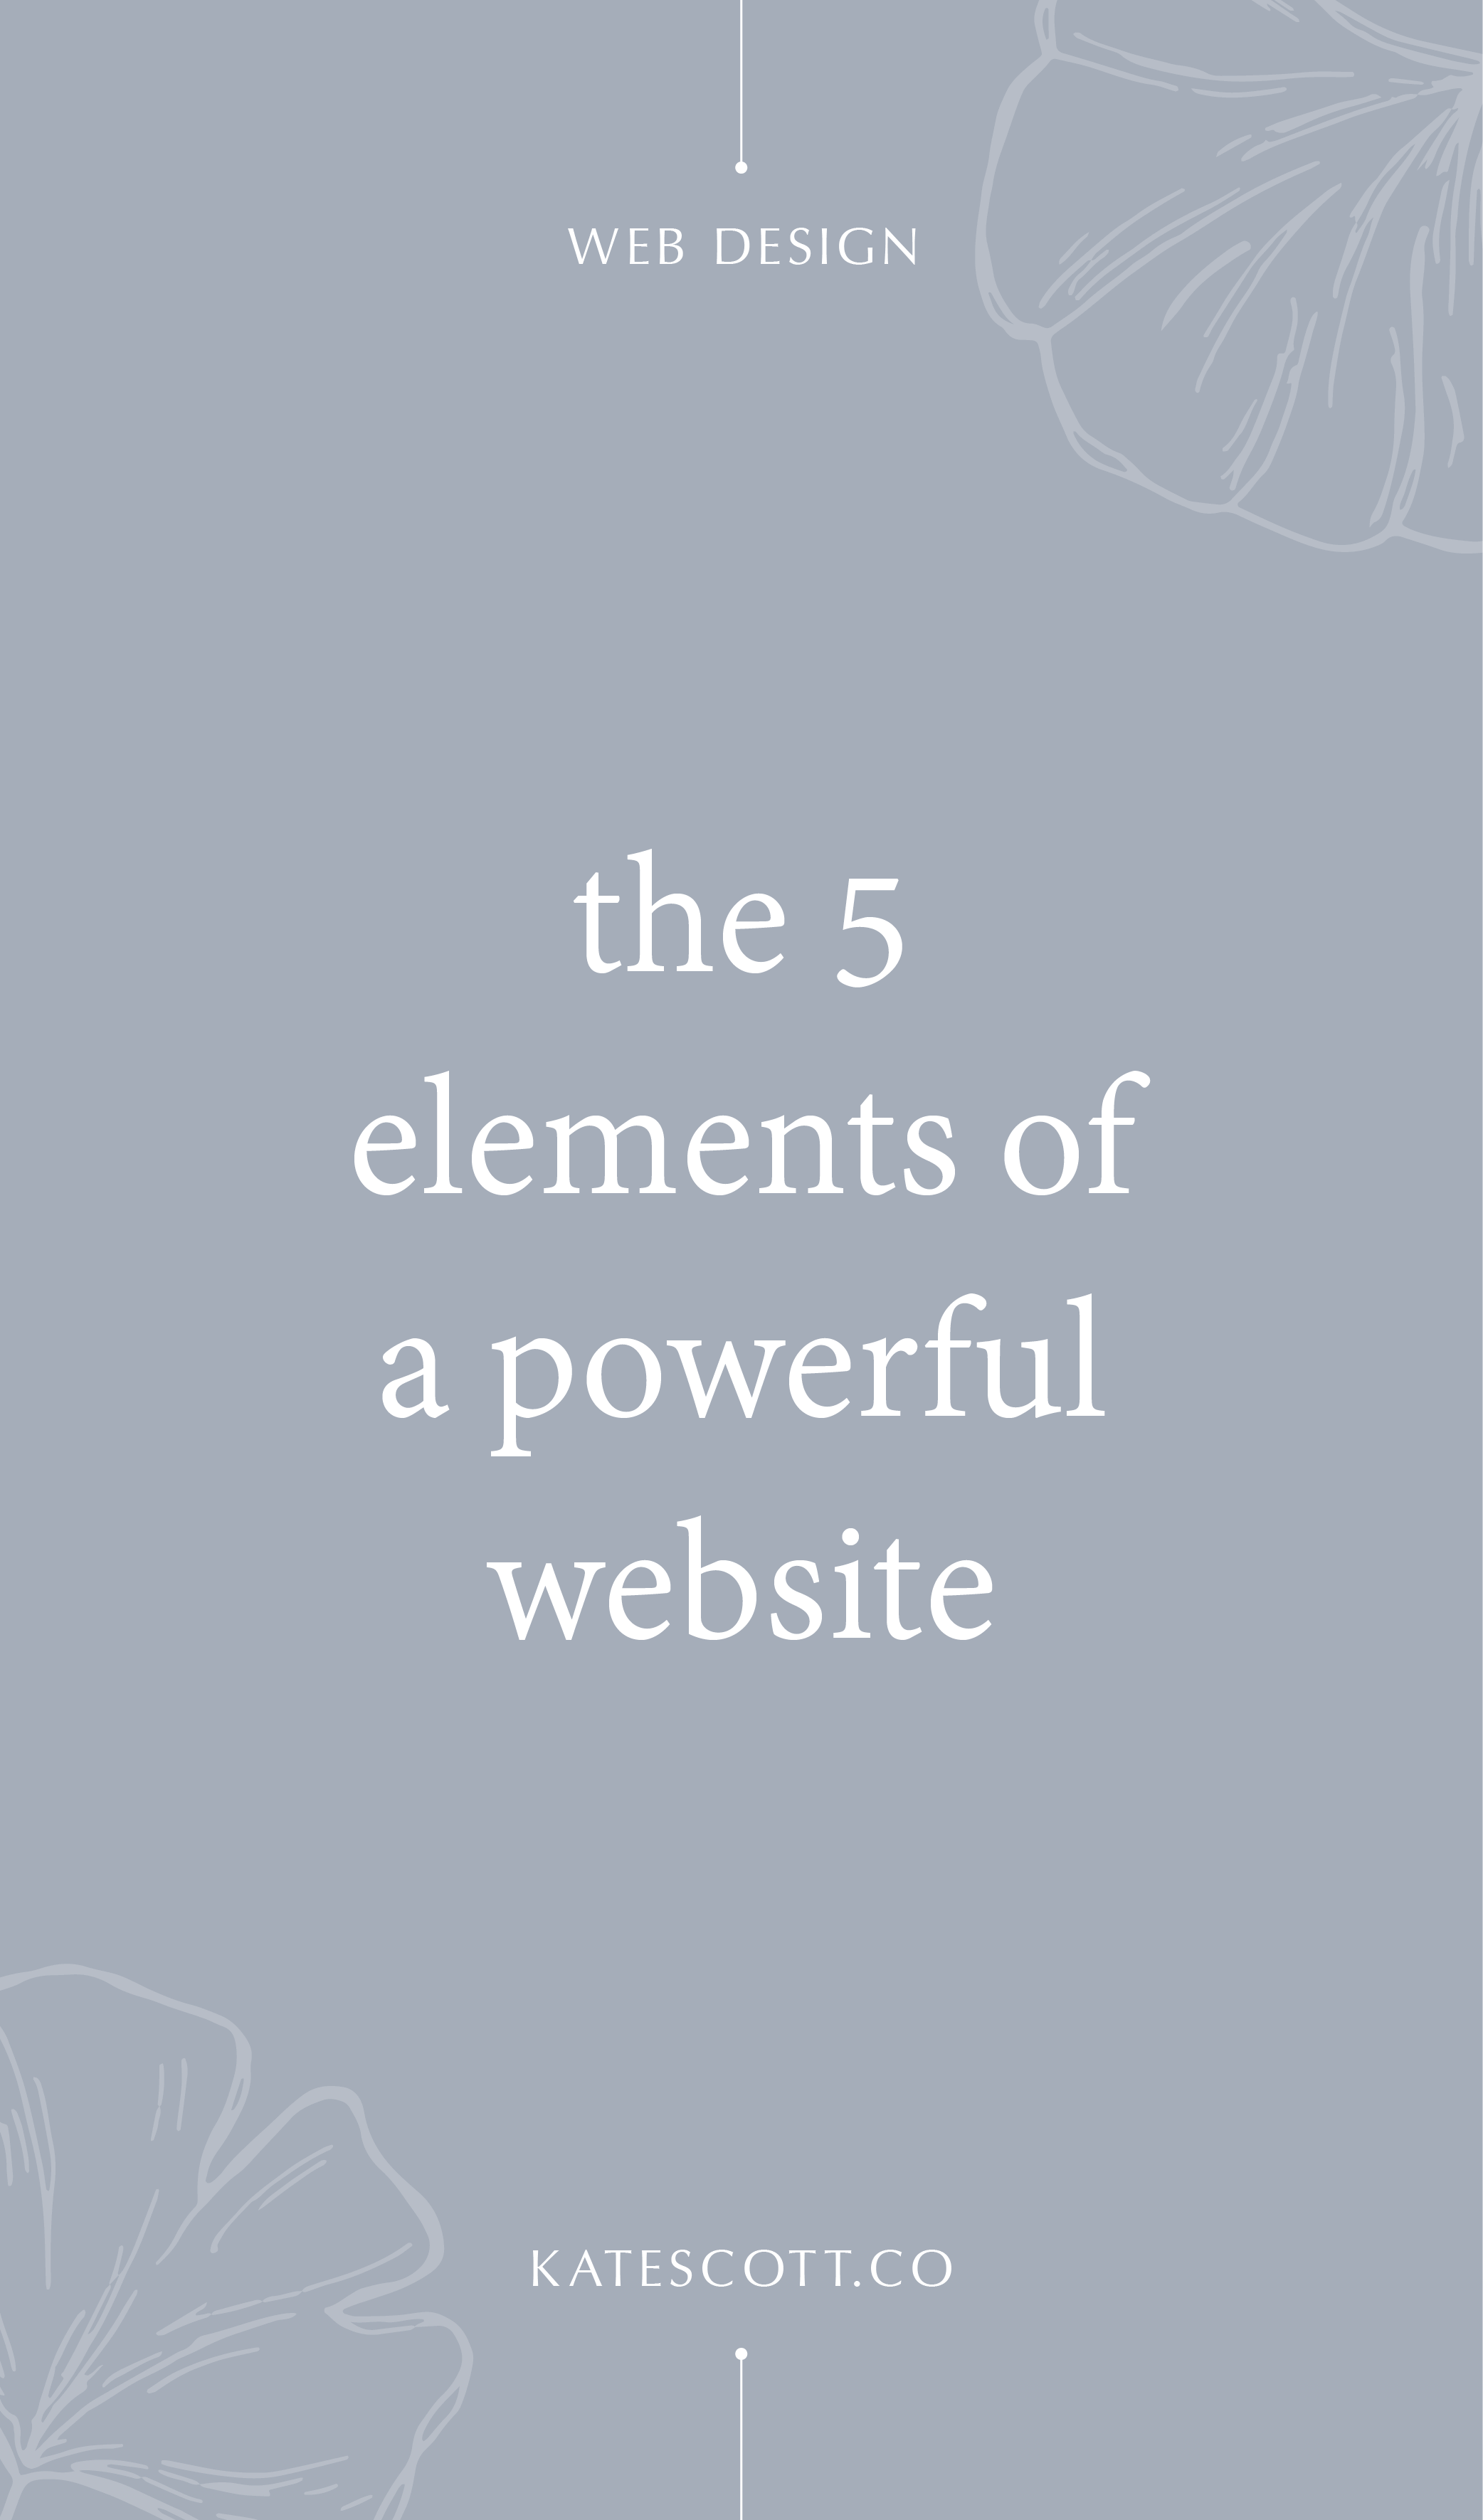 Your website has the potential to be one of the most powerful marketing and conversion tools for growing your business. Here are the 5 elements of a powerful website. | How to Build a Website | Website Marketing Tips | Website Marketing Strategy | Branding Design | Copywriting Tips